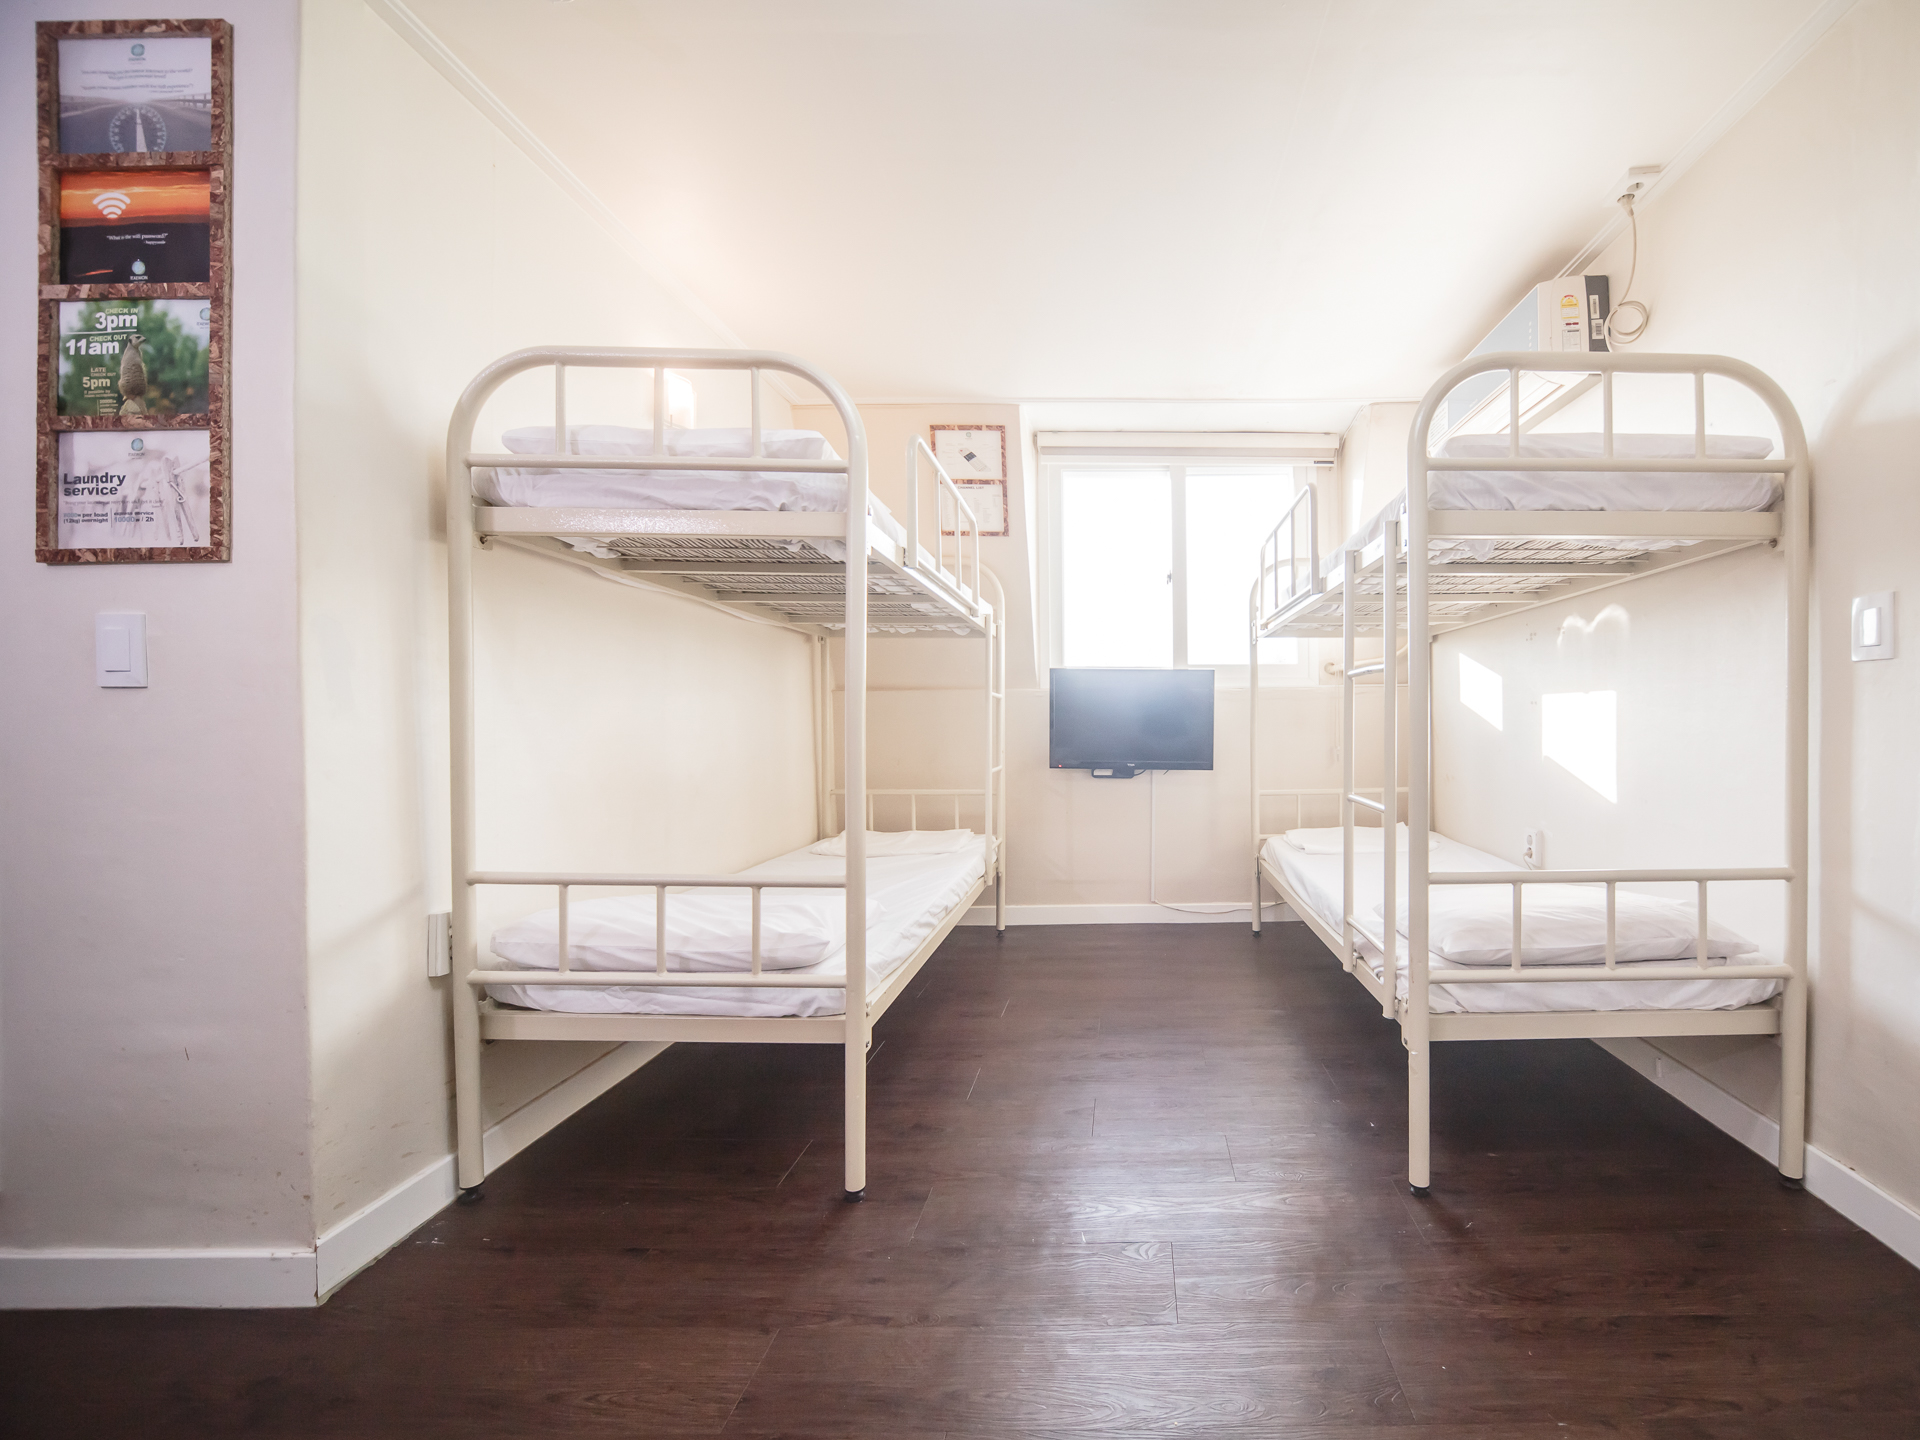 4 bed Apartment, Itaewon Inn hostel